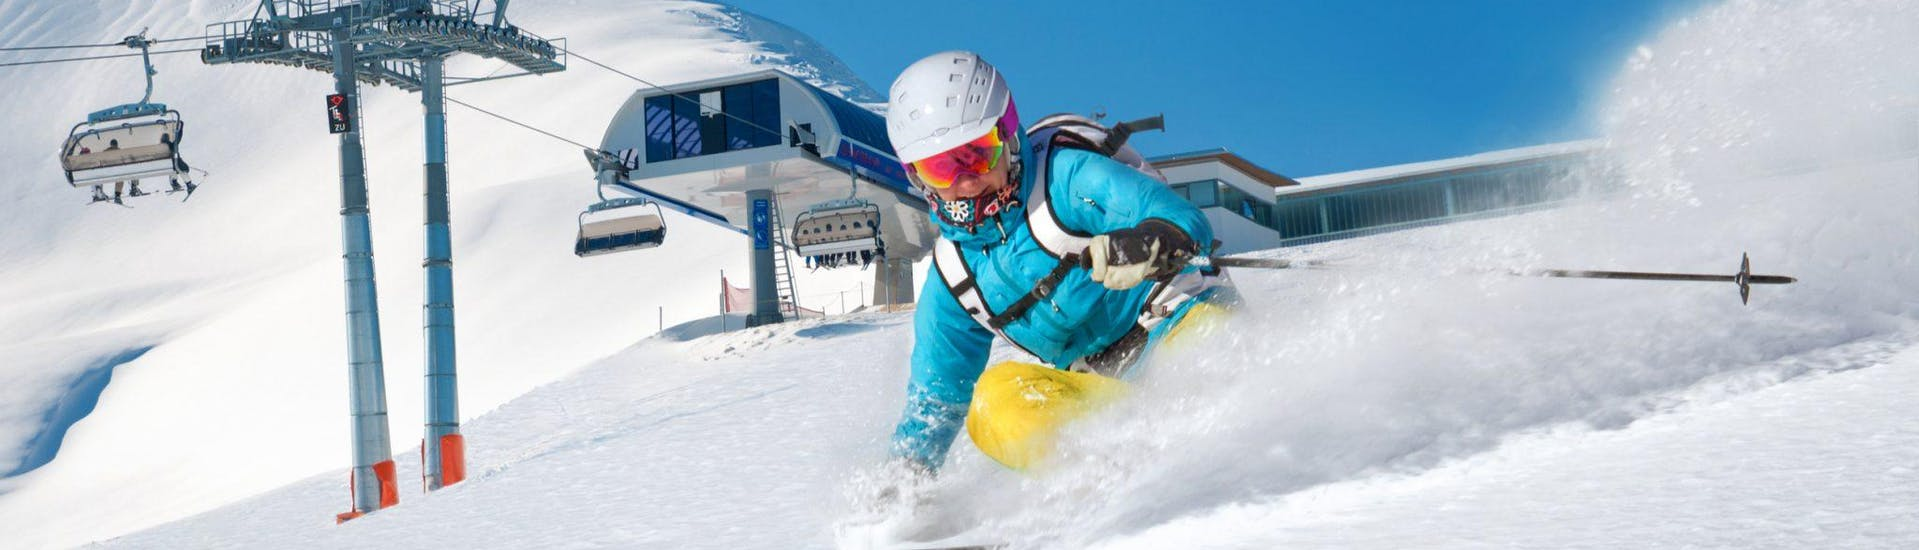 A skier is enjoying the fresh powder snow during his Off-Piste Skiing Lessons for Advanced Skiers with Bergführer Salzburg.